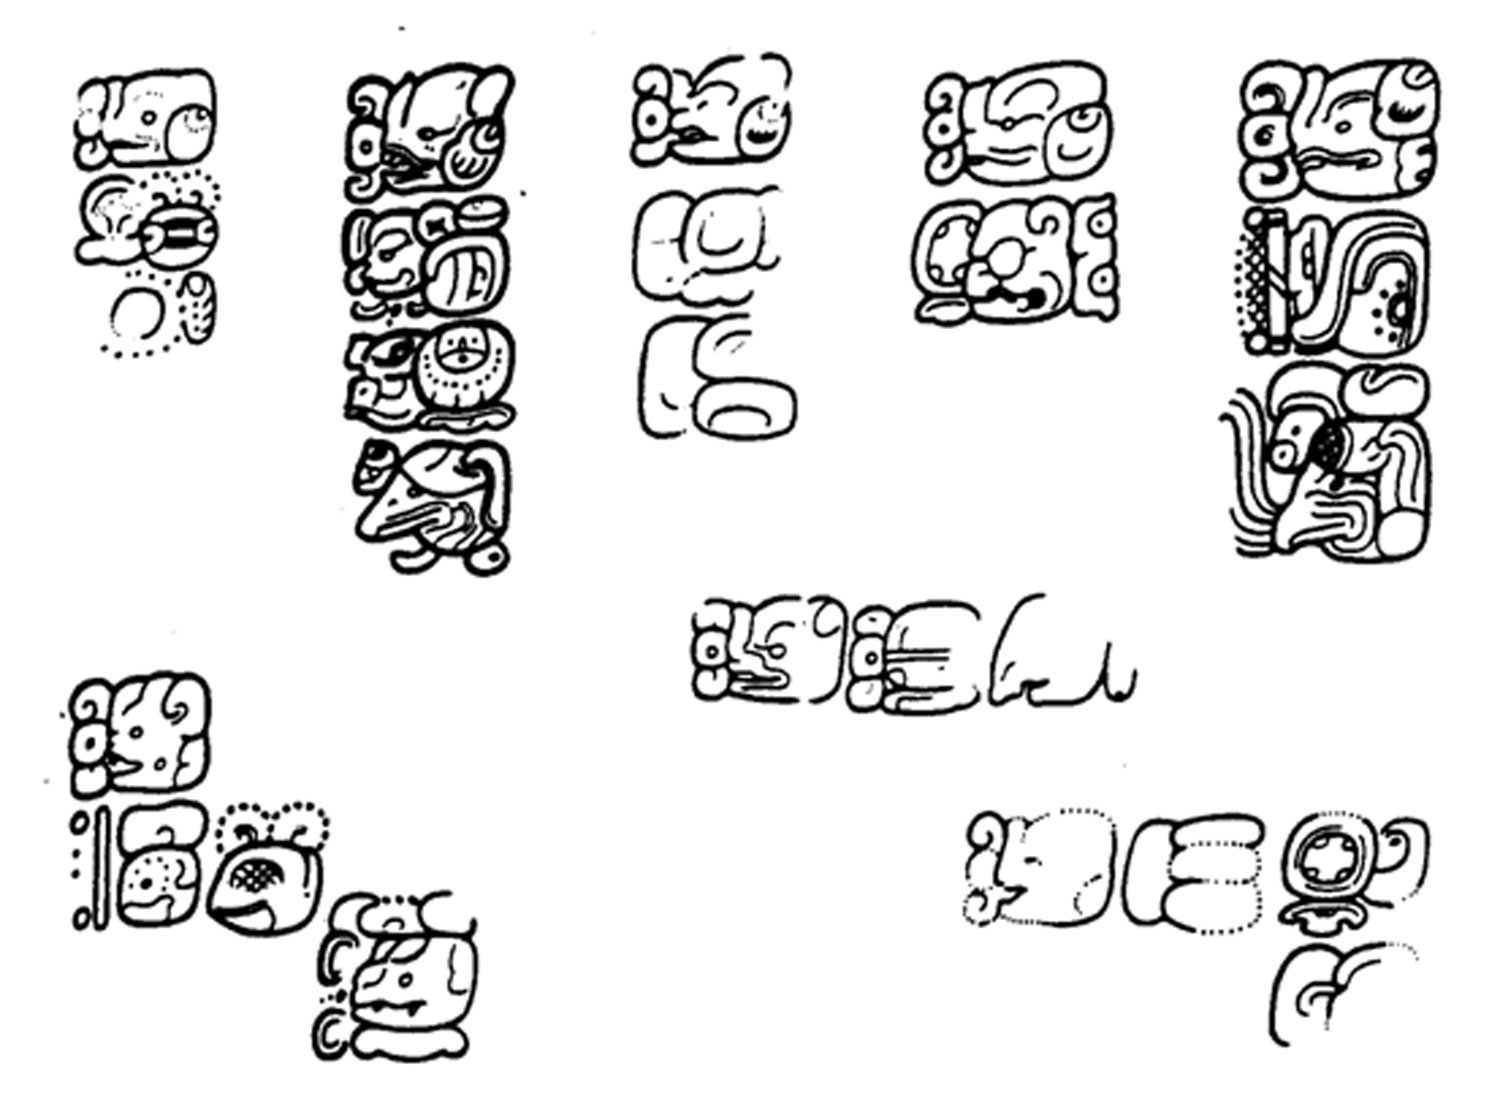 Eight examples of Maya 'lu-Bat' glyph for 'engraver' followed by the engraver's name found on Stela 31, El Perú, Guatemala, as presented by Michael Coe. (Coe 2012, 249)